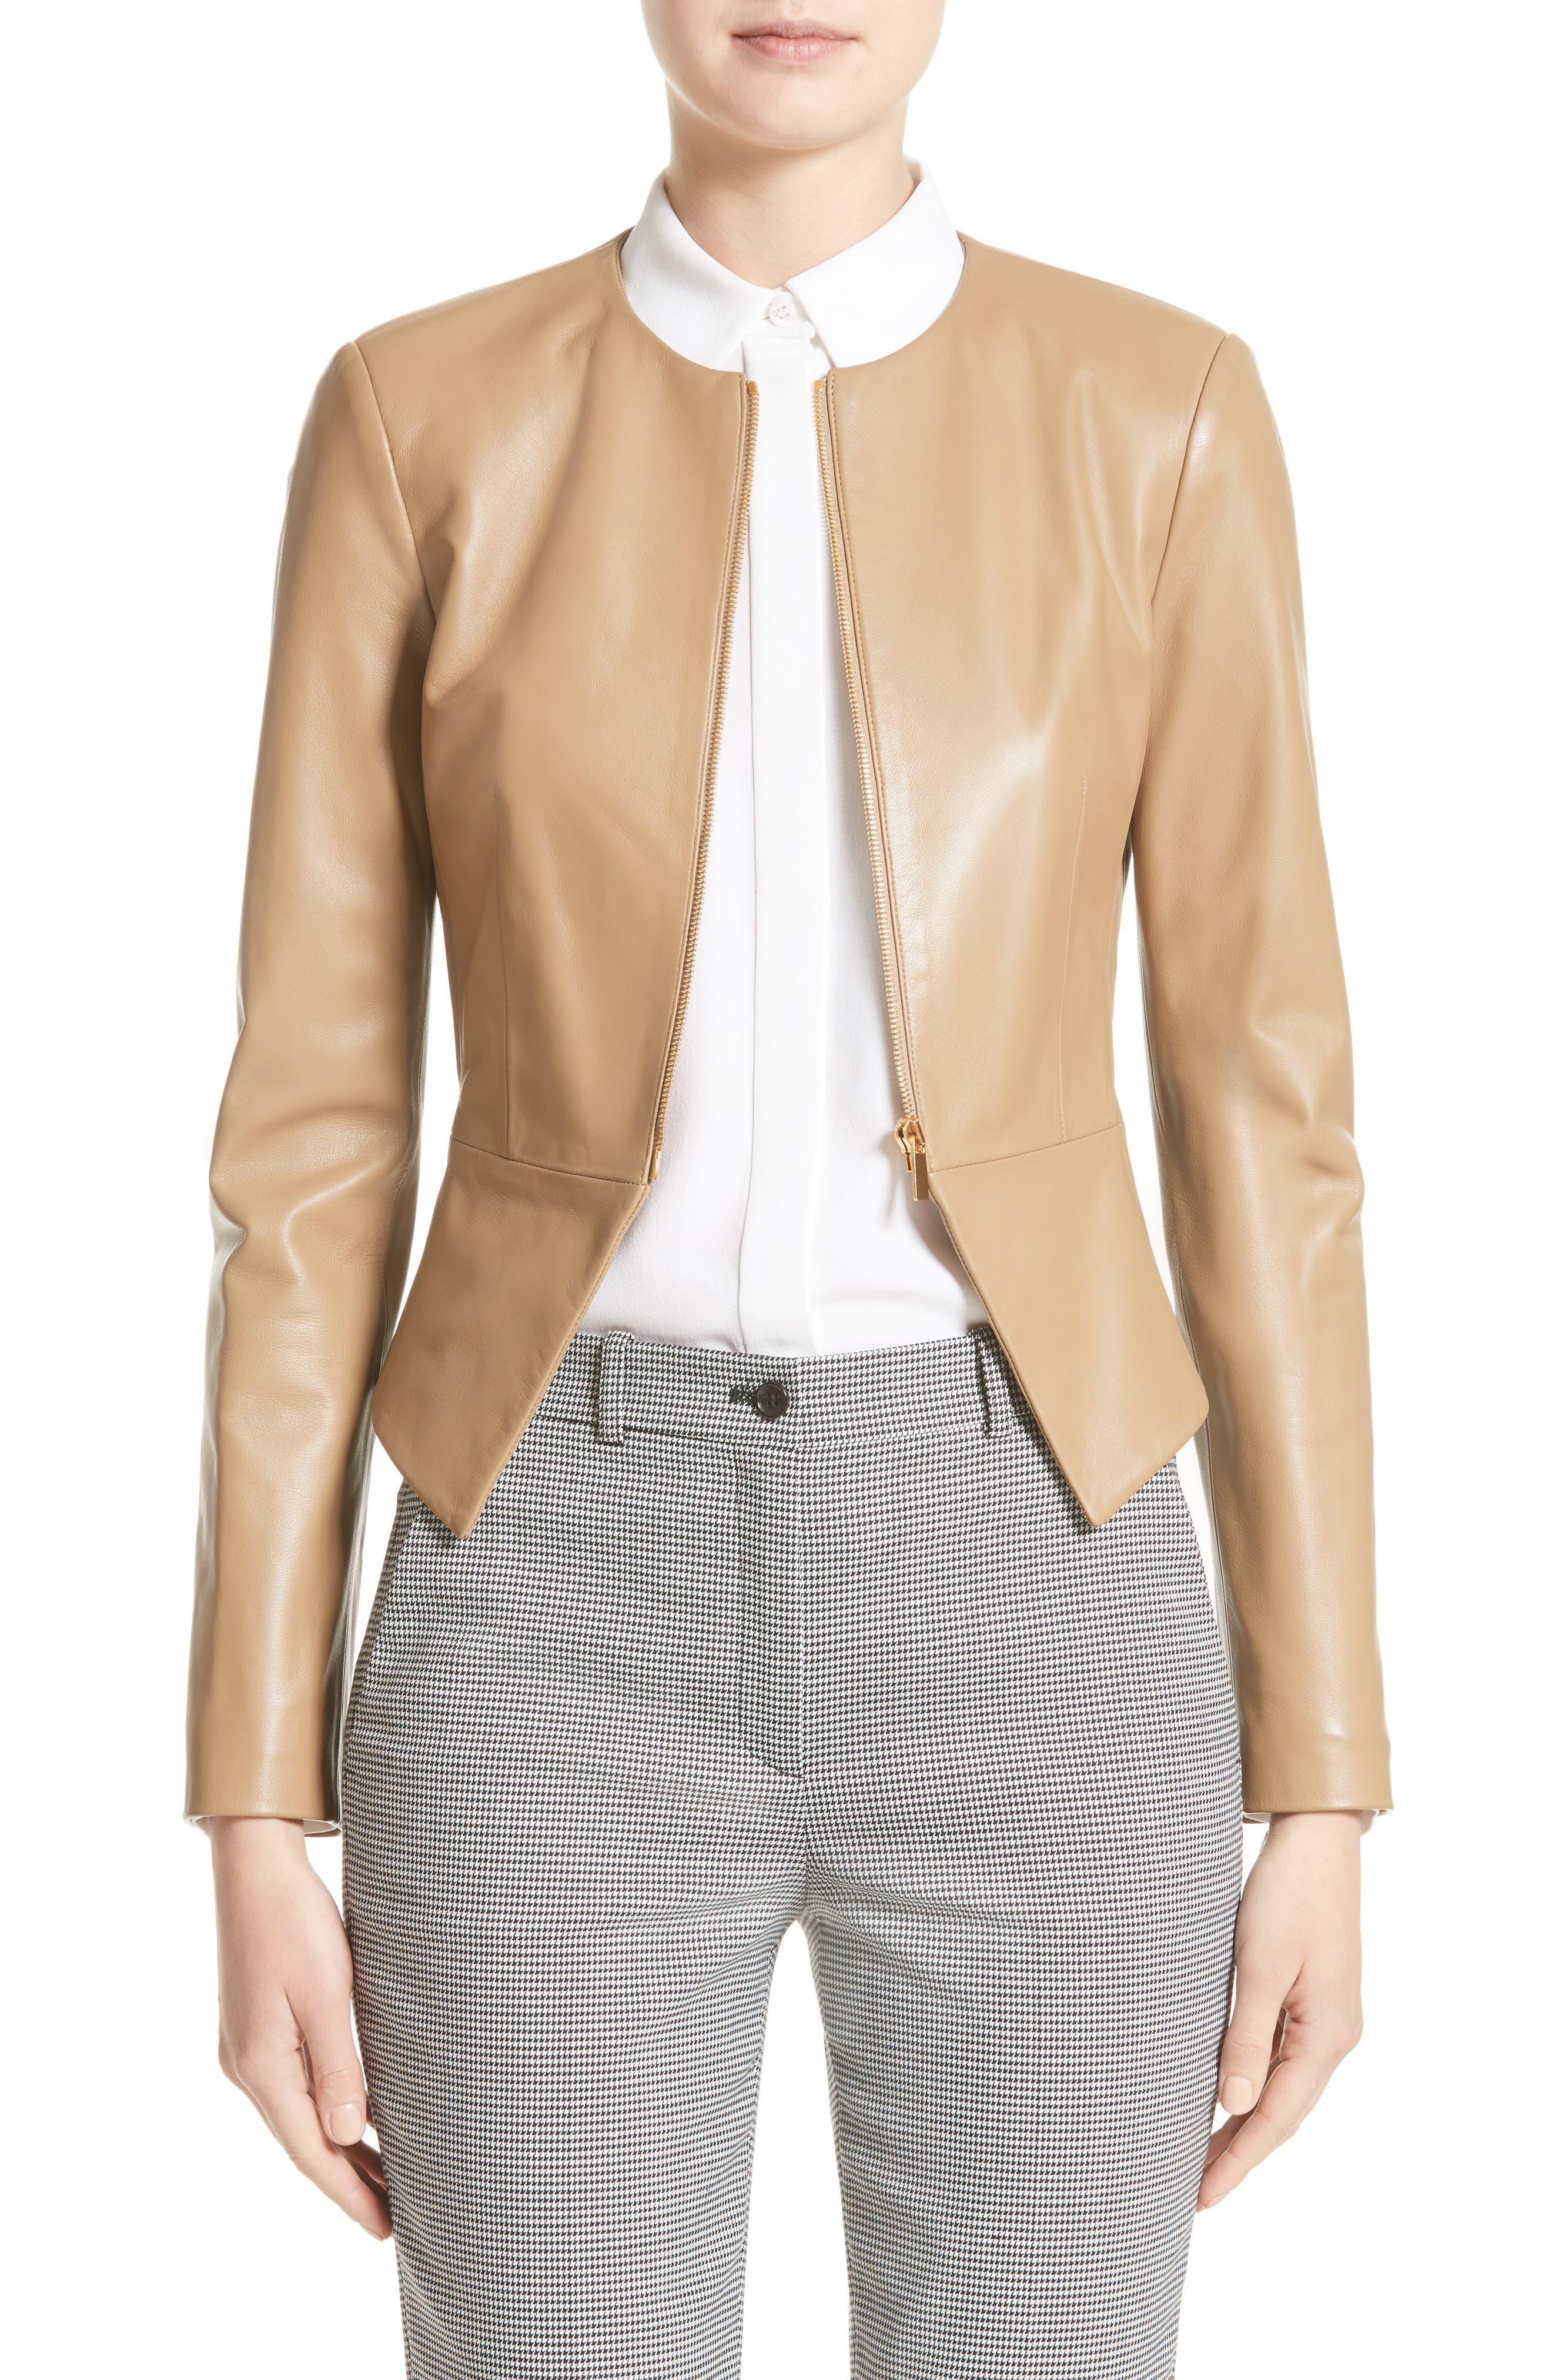 Michael Kors Lambskin Leather Peplum Jacket